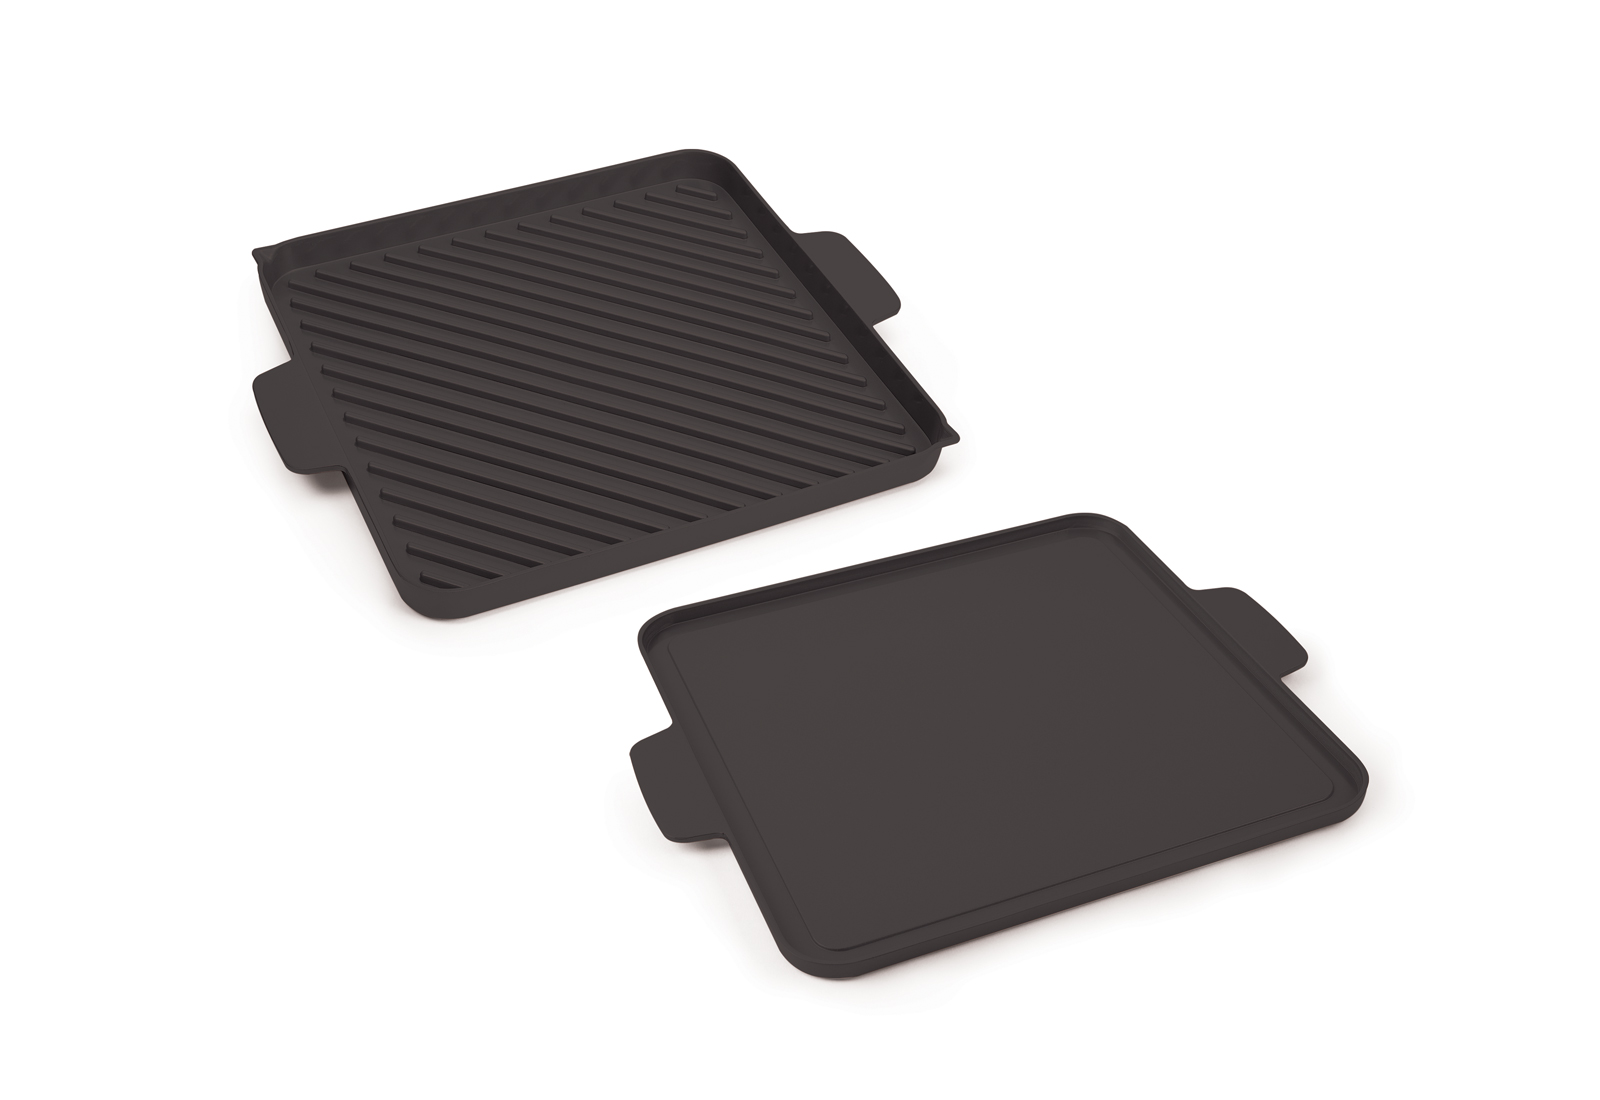 SHAQ Grill & Griddle Product Image